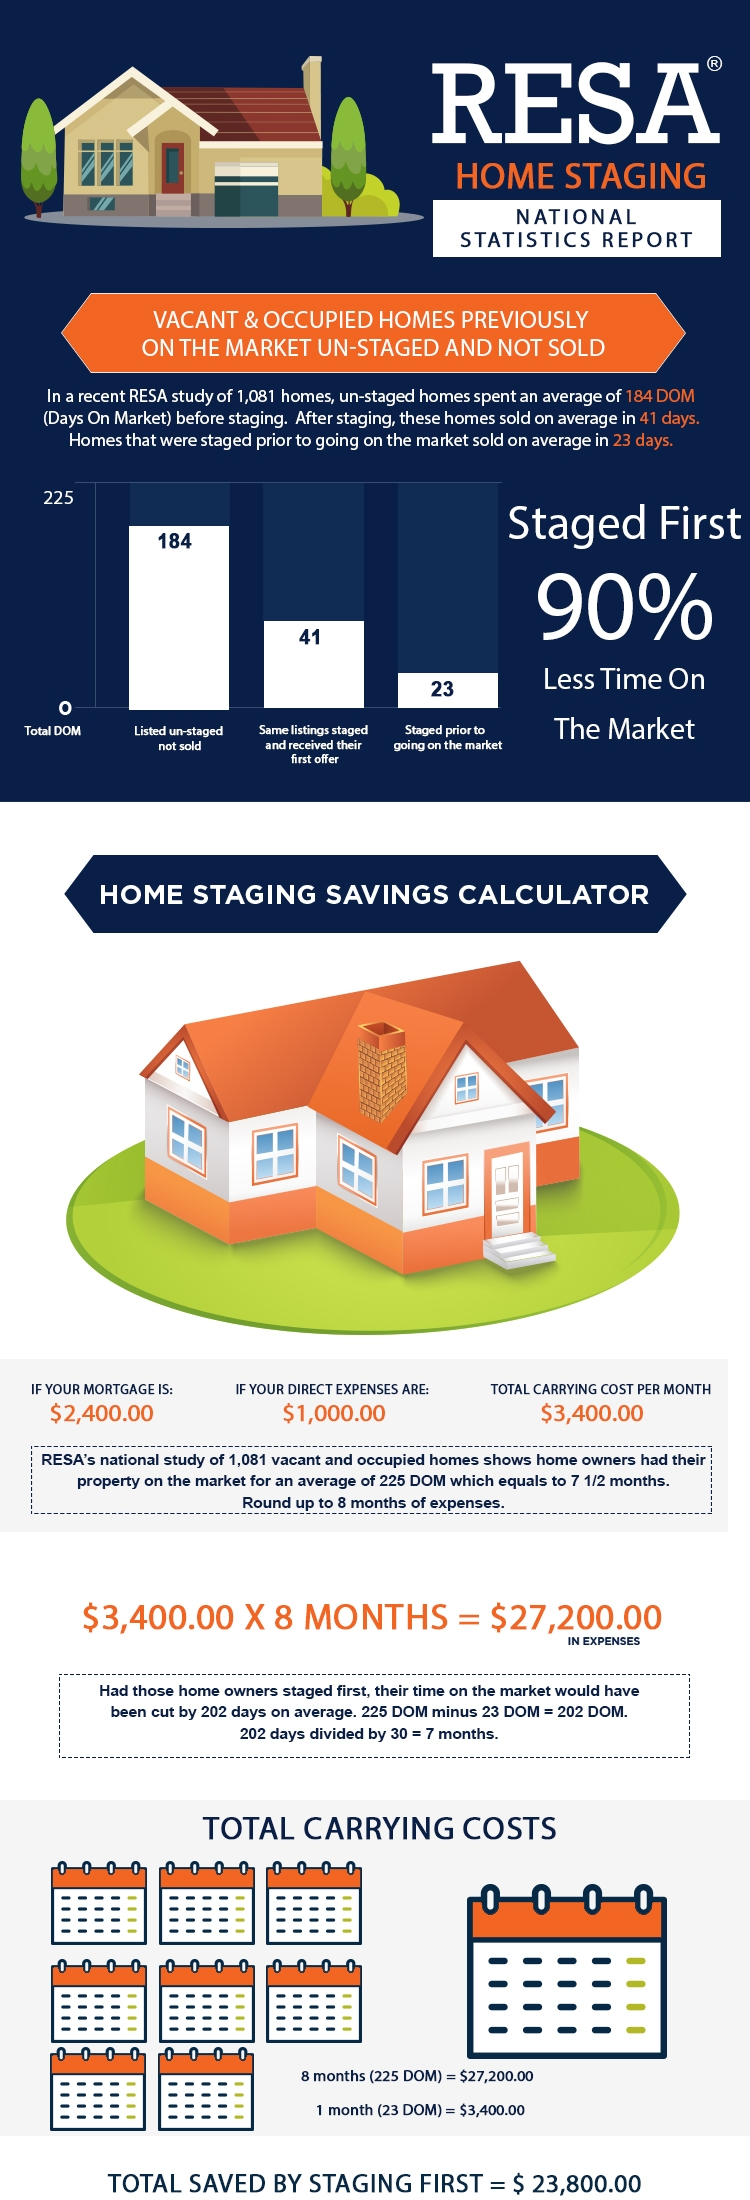 2016-RESA-Home-Staging-Statistics-Report-Final.jpg